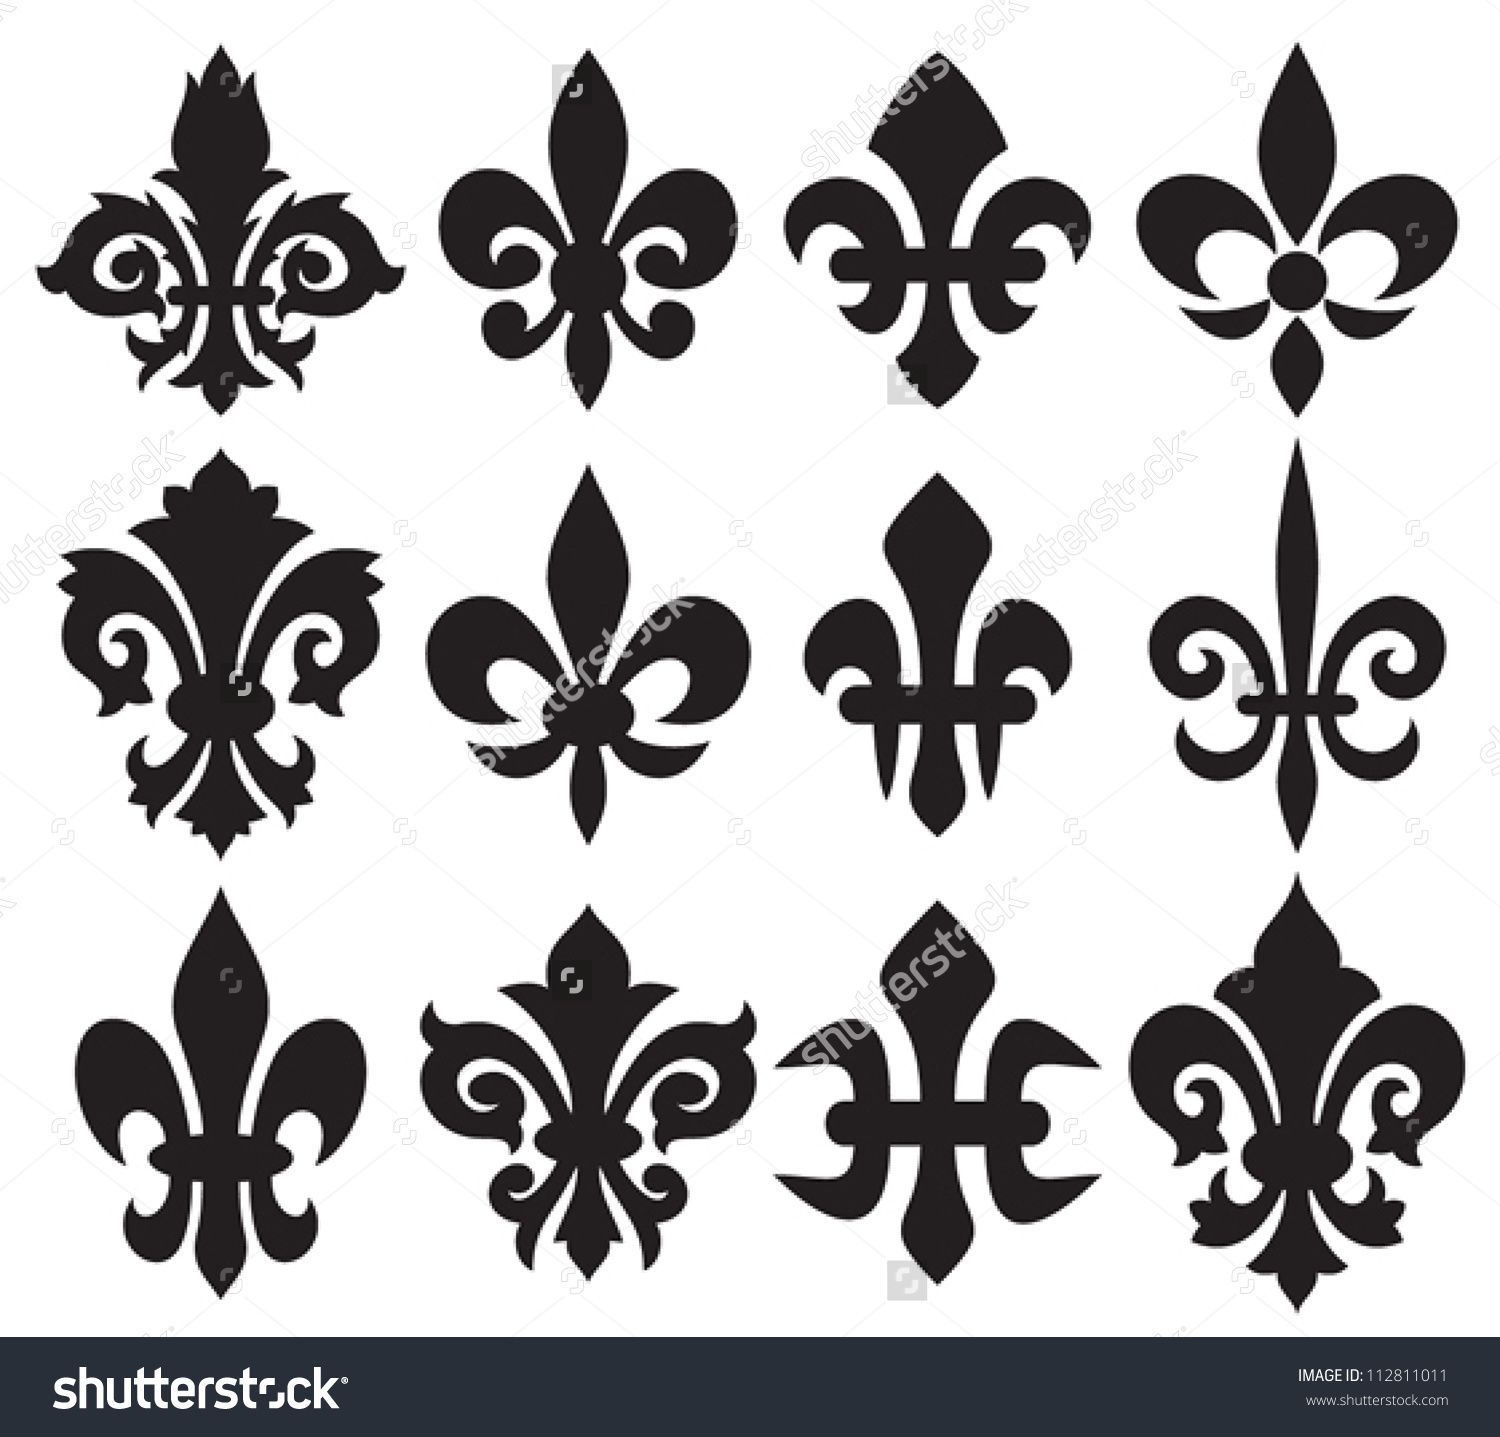 Flower meanings lily - Illustration Of Lily Flower Heraldic Symbol Fleur De Lis Royal French Lily Vector Art Clipart And Stock Vectors